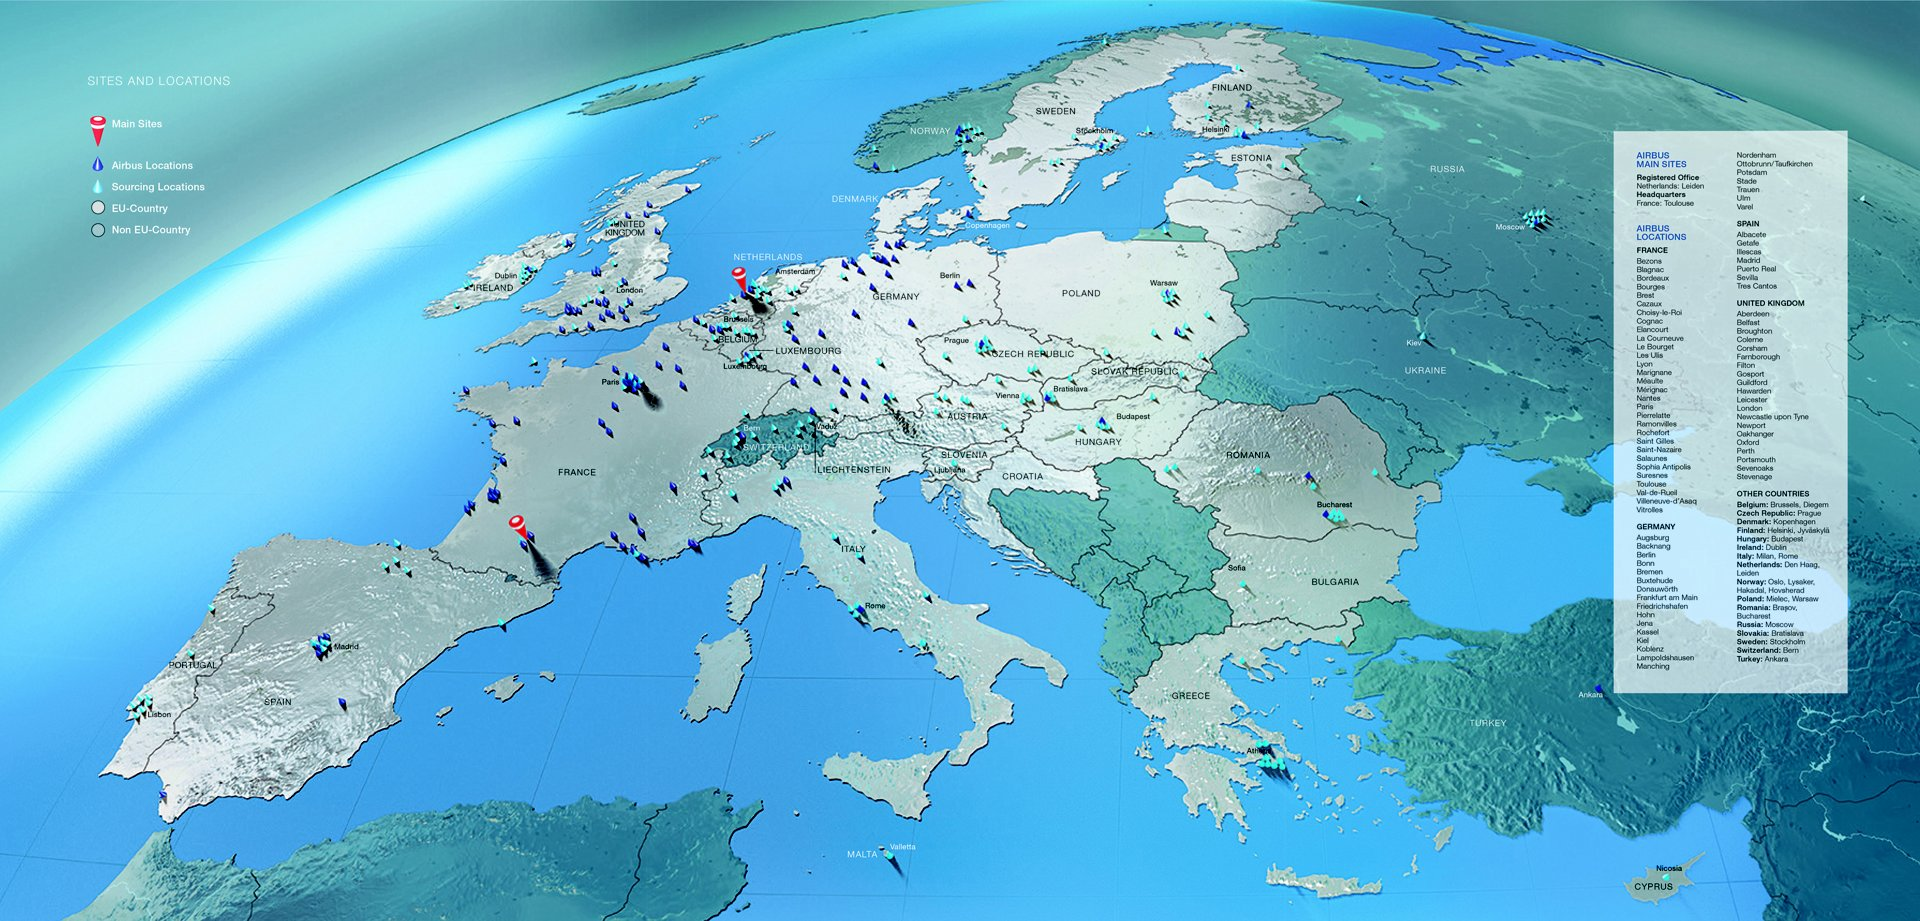 Map-Airbus-in-EUROPE